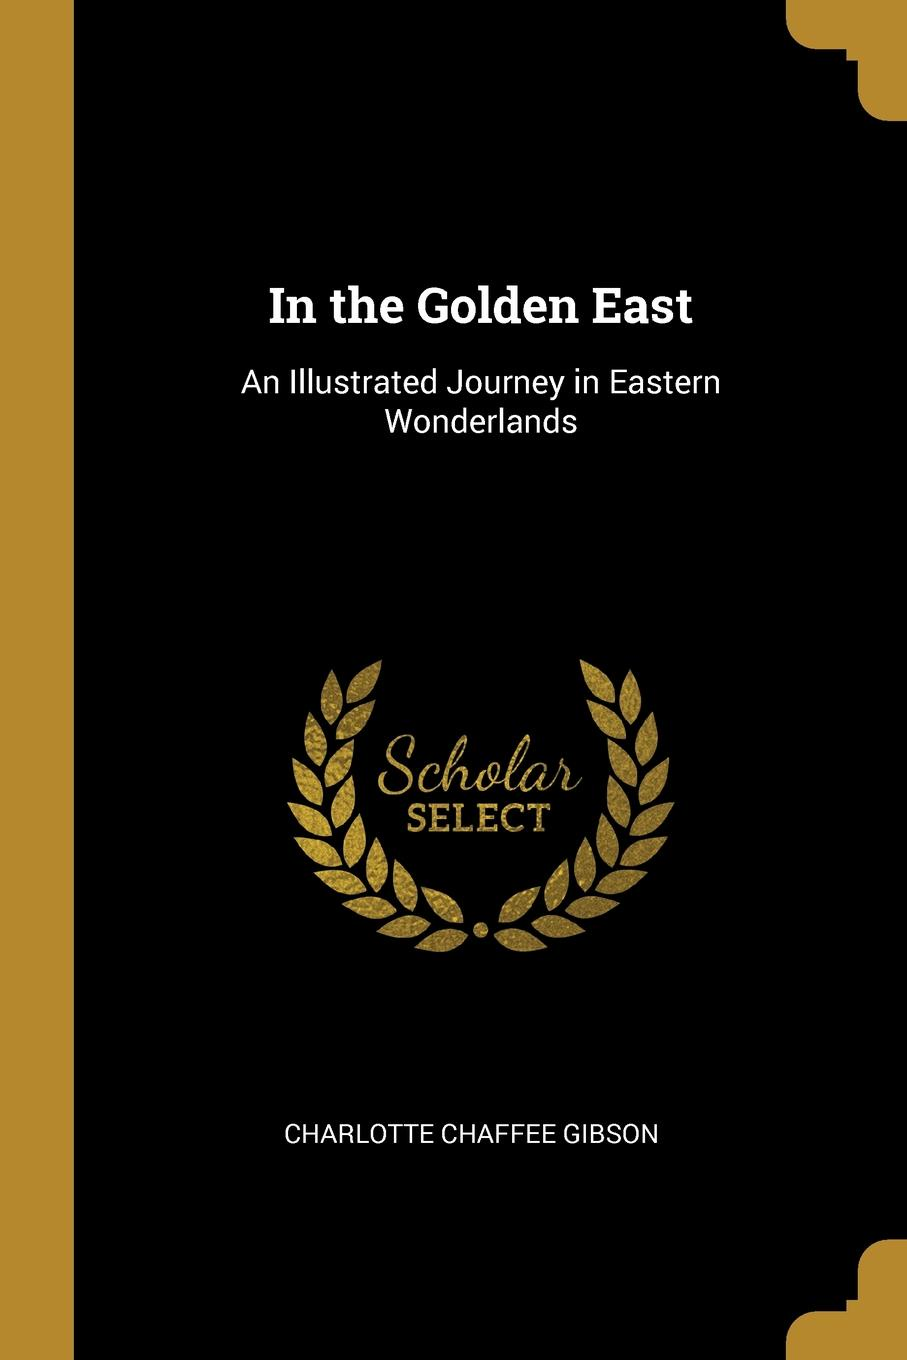 Charlotte Chaffee Gibson. In the Golden East. An Illustrated Journey in Eastern Wonderlands